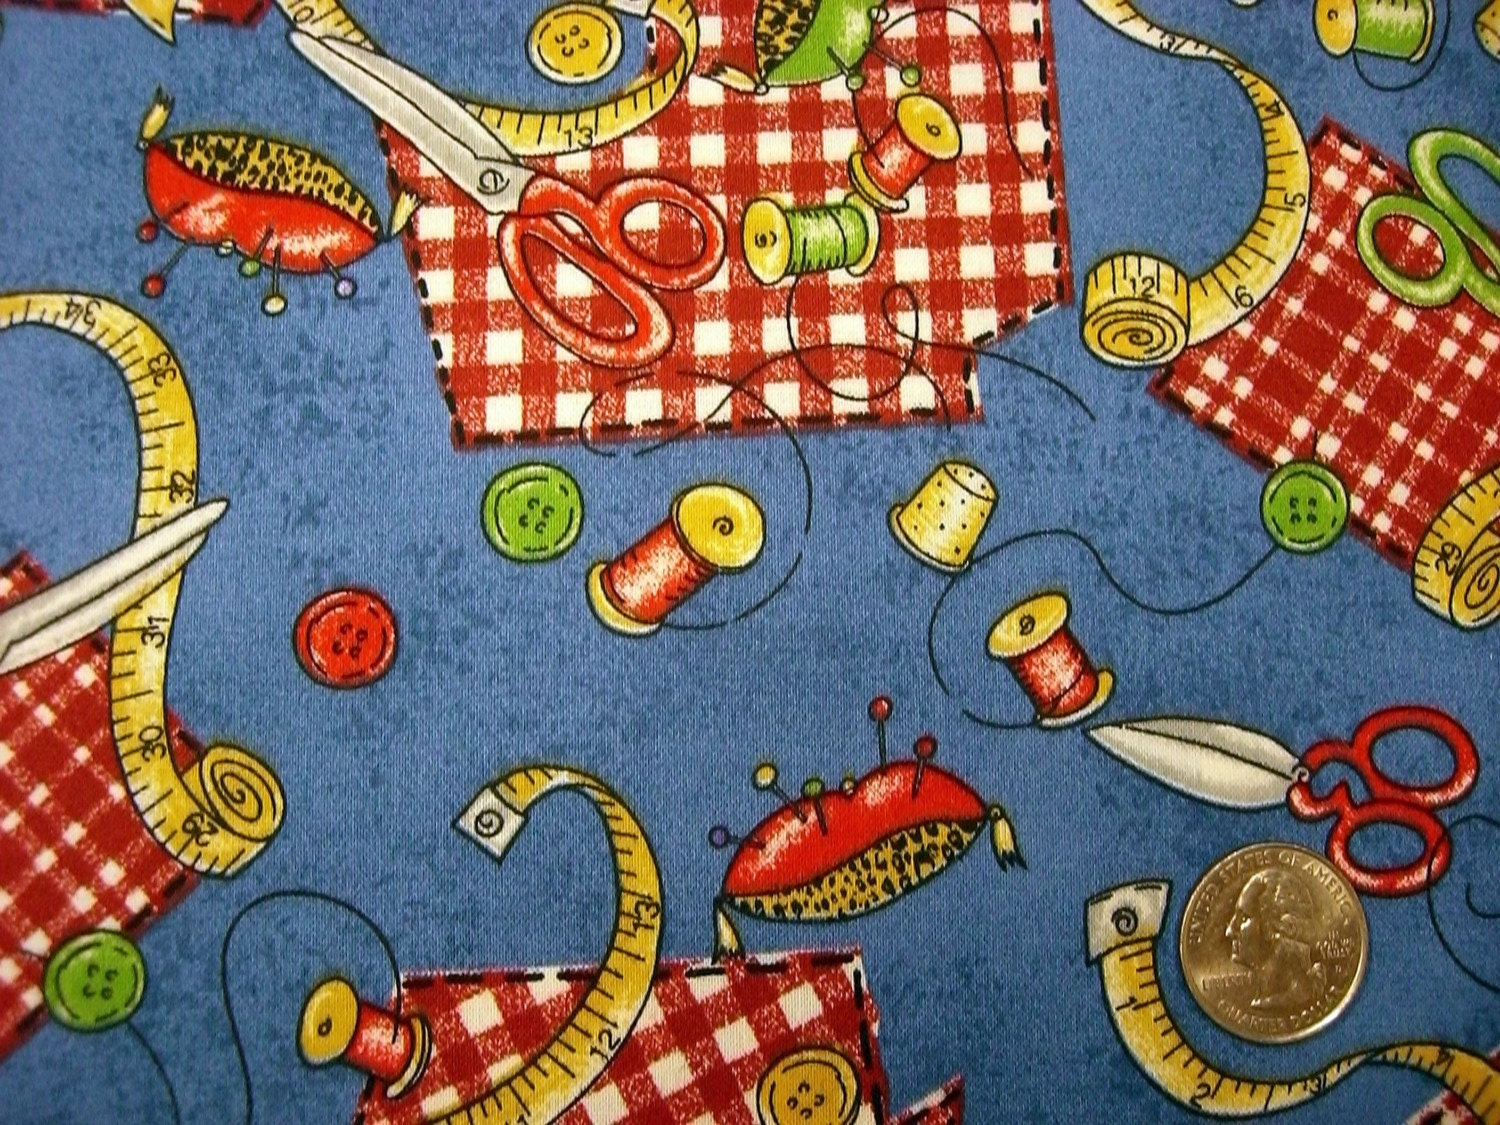 clearance sale one yard cut quilt fabric sewing items on